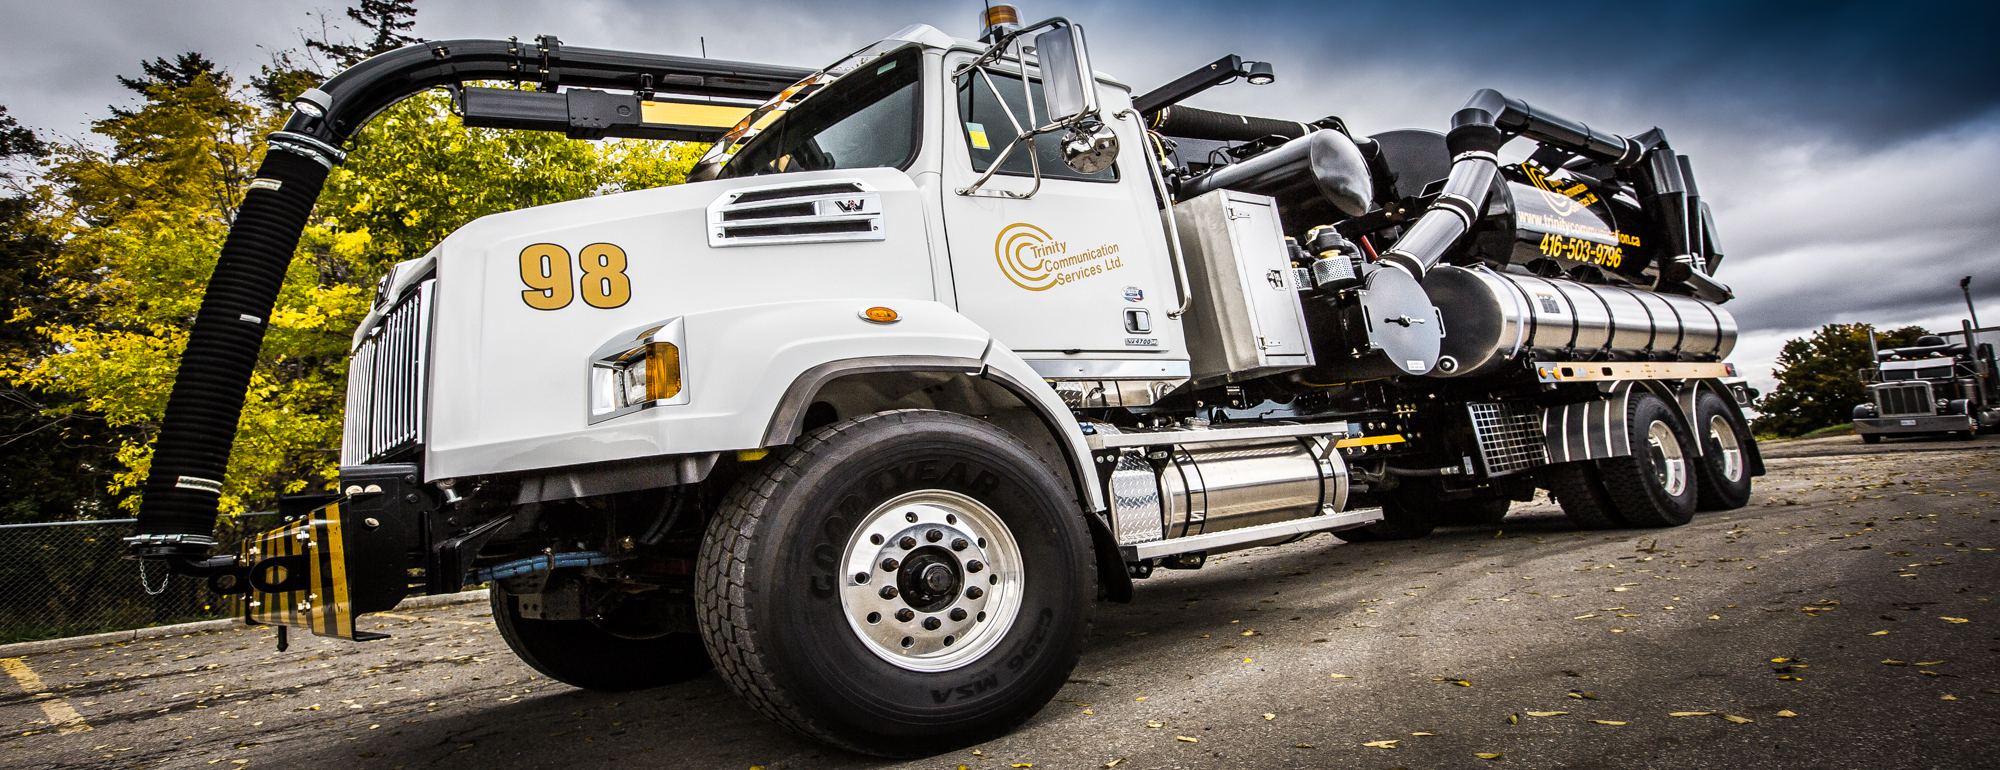 trinity communication services hydro vac excavation underground utility water blasting industrial cleaning wet dry vac day lighting